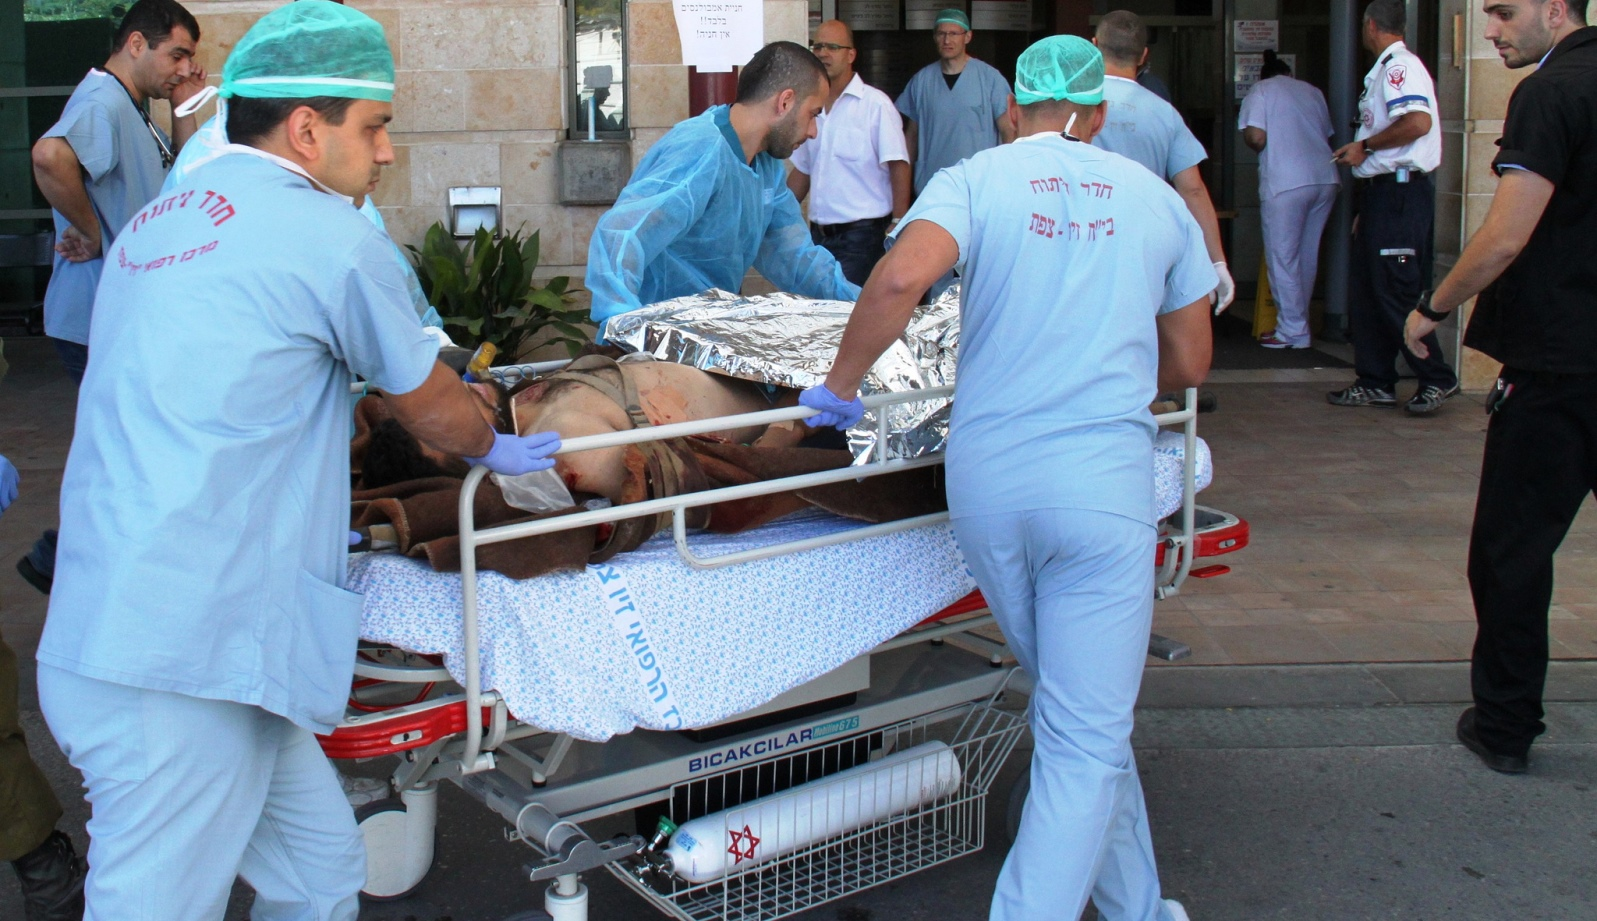 An injured civilian from the civil war in Syria being transferred to Ziv Medical Center in Israel. Photo by Simon Haddad/Ziv Medical Center